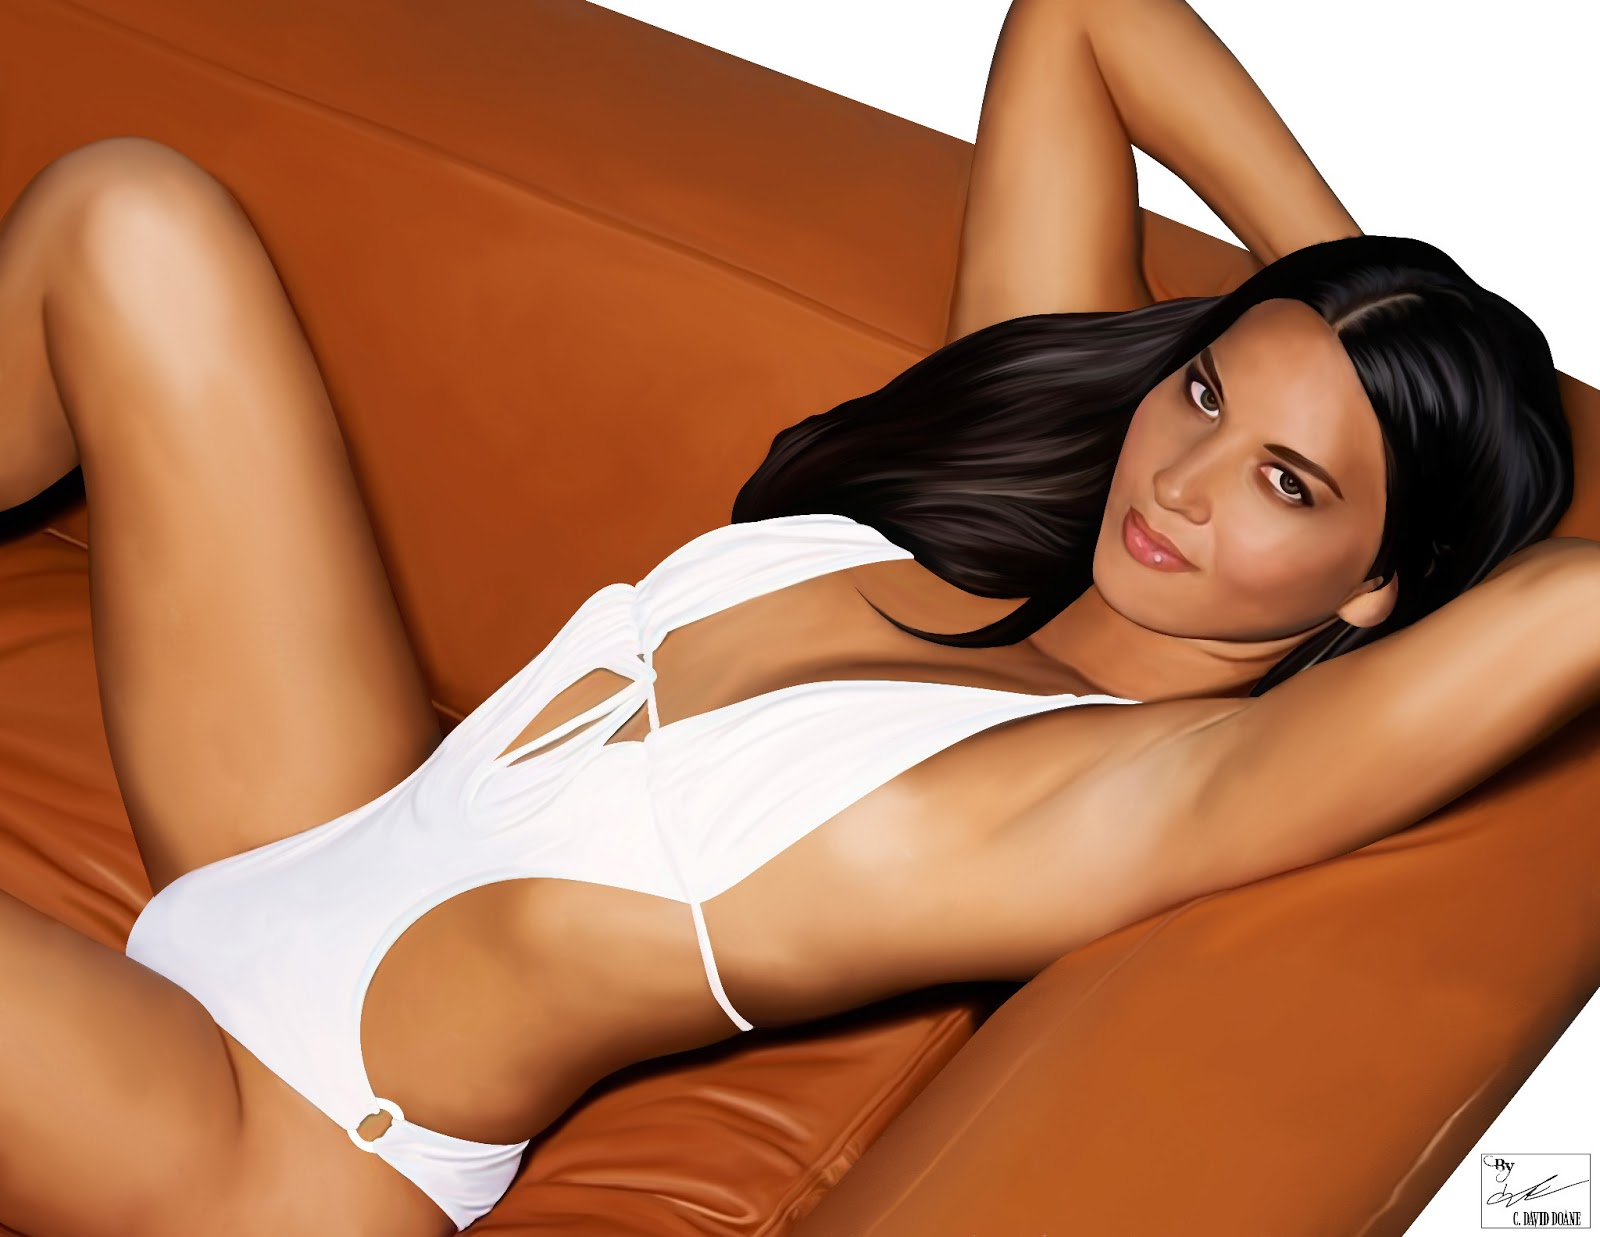 Olivia munn hot pictures archives